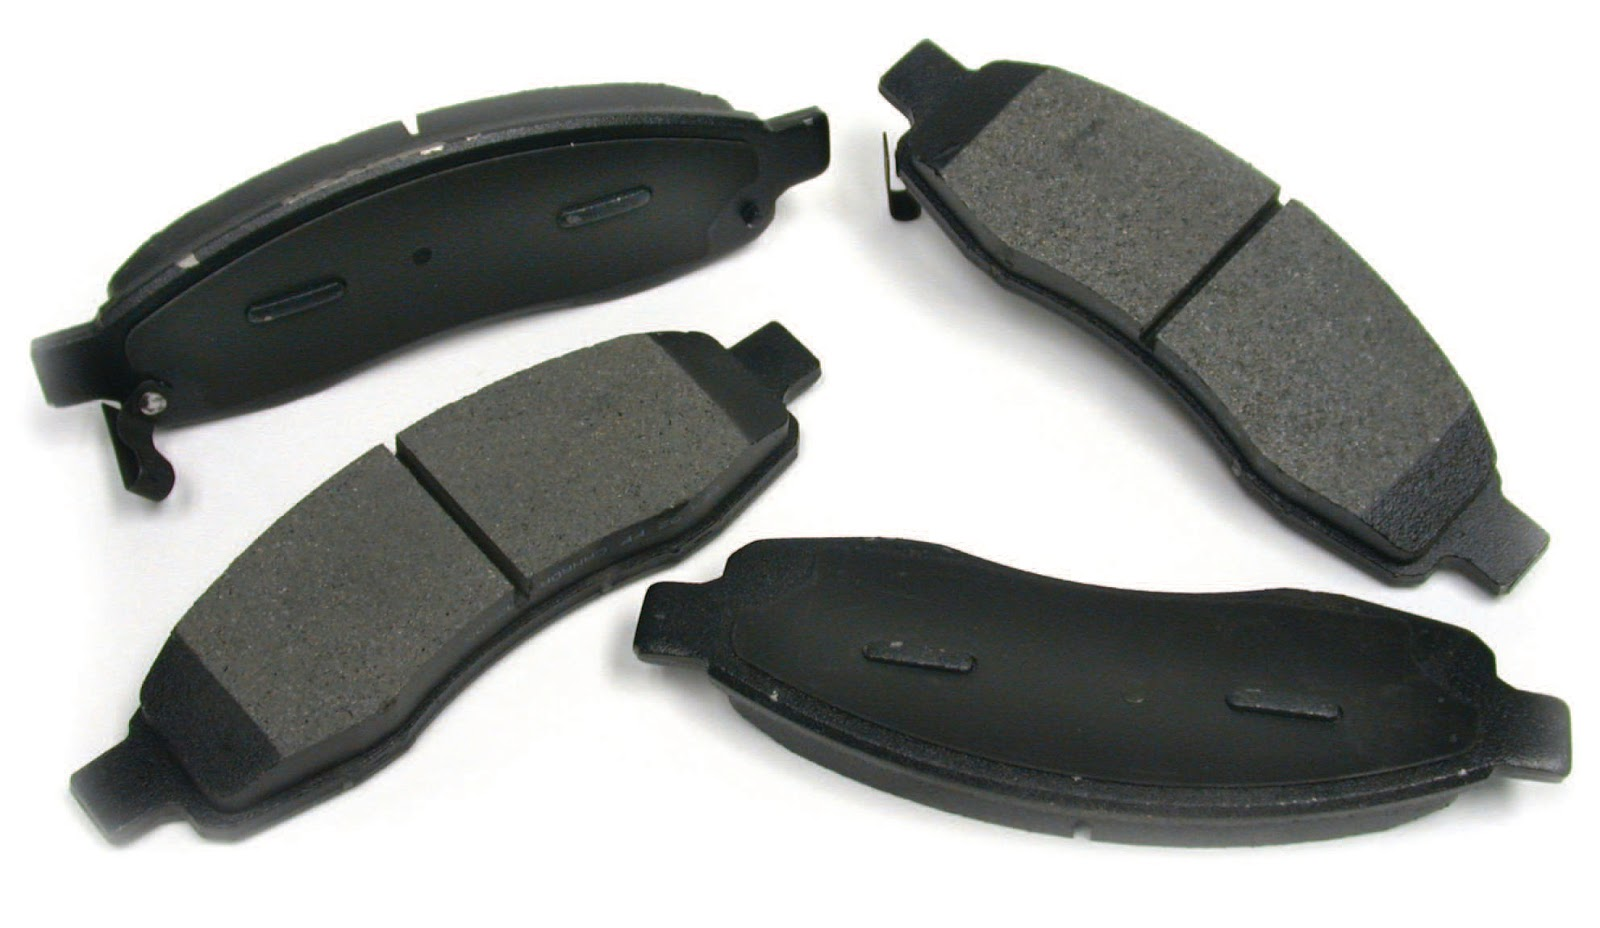 Passenger Car Brake Pads Suppliers Brake Pads Made In China Toyota Passenger Car Brake Pads